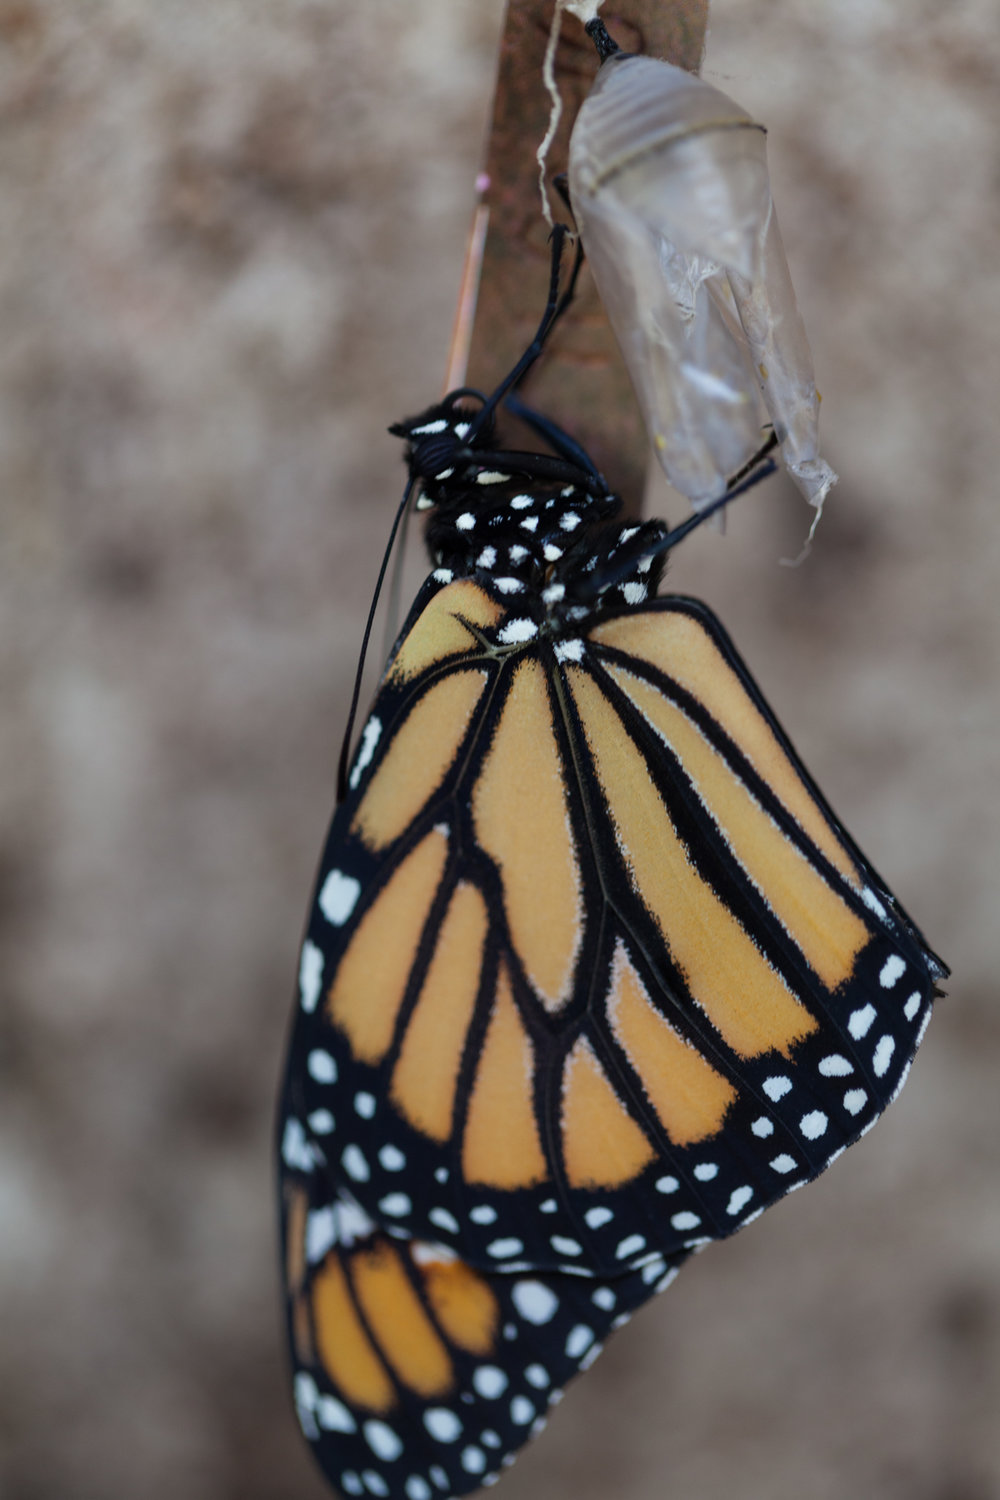 A monarch emerges from its chrysalis.